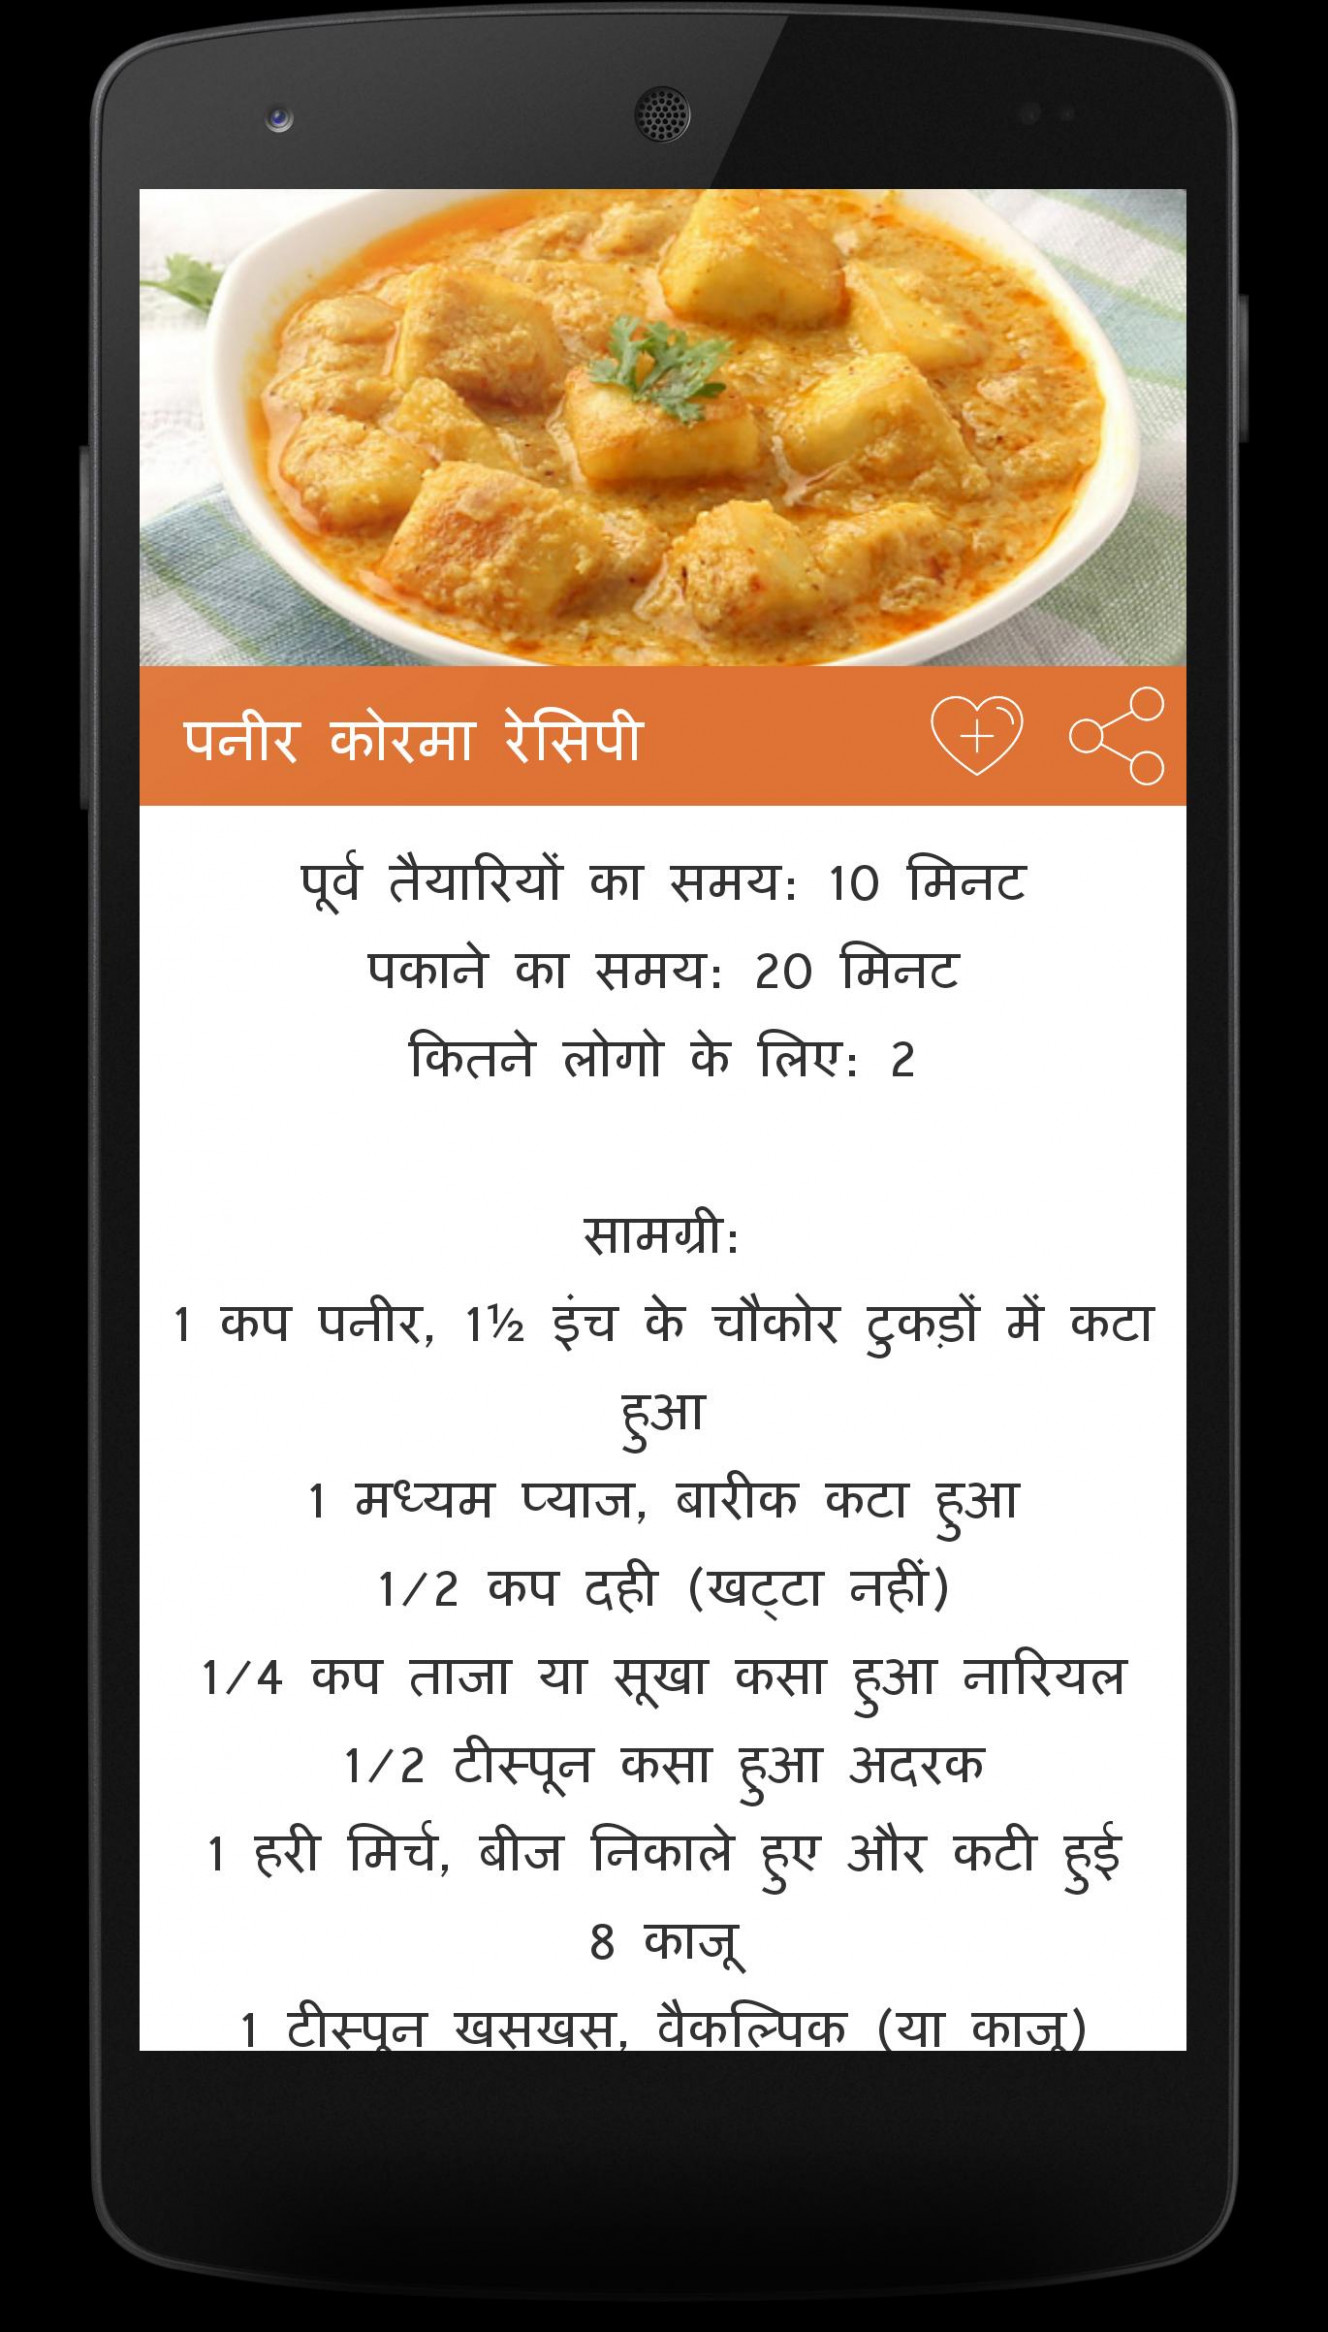 Raat ka Bhojan (Dinner) Recipes in Hindi for Android - APK ..